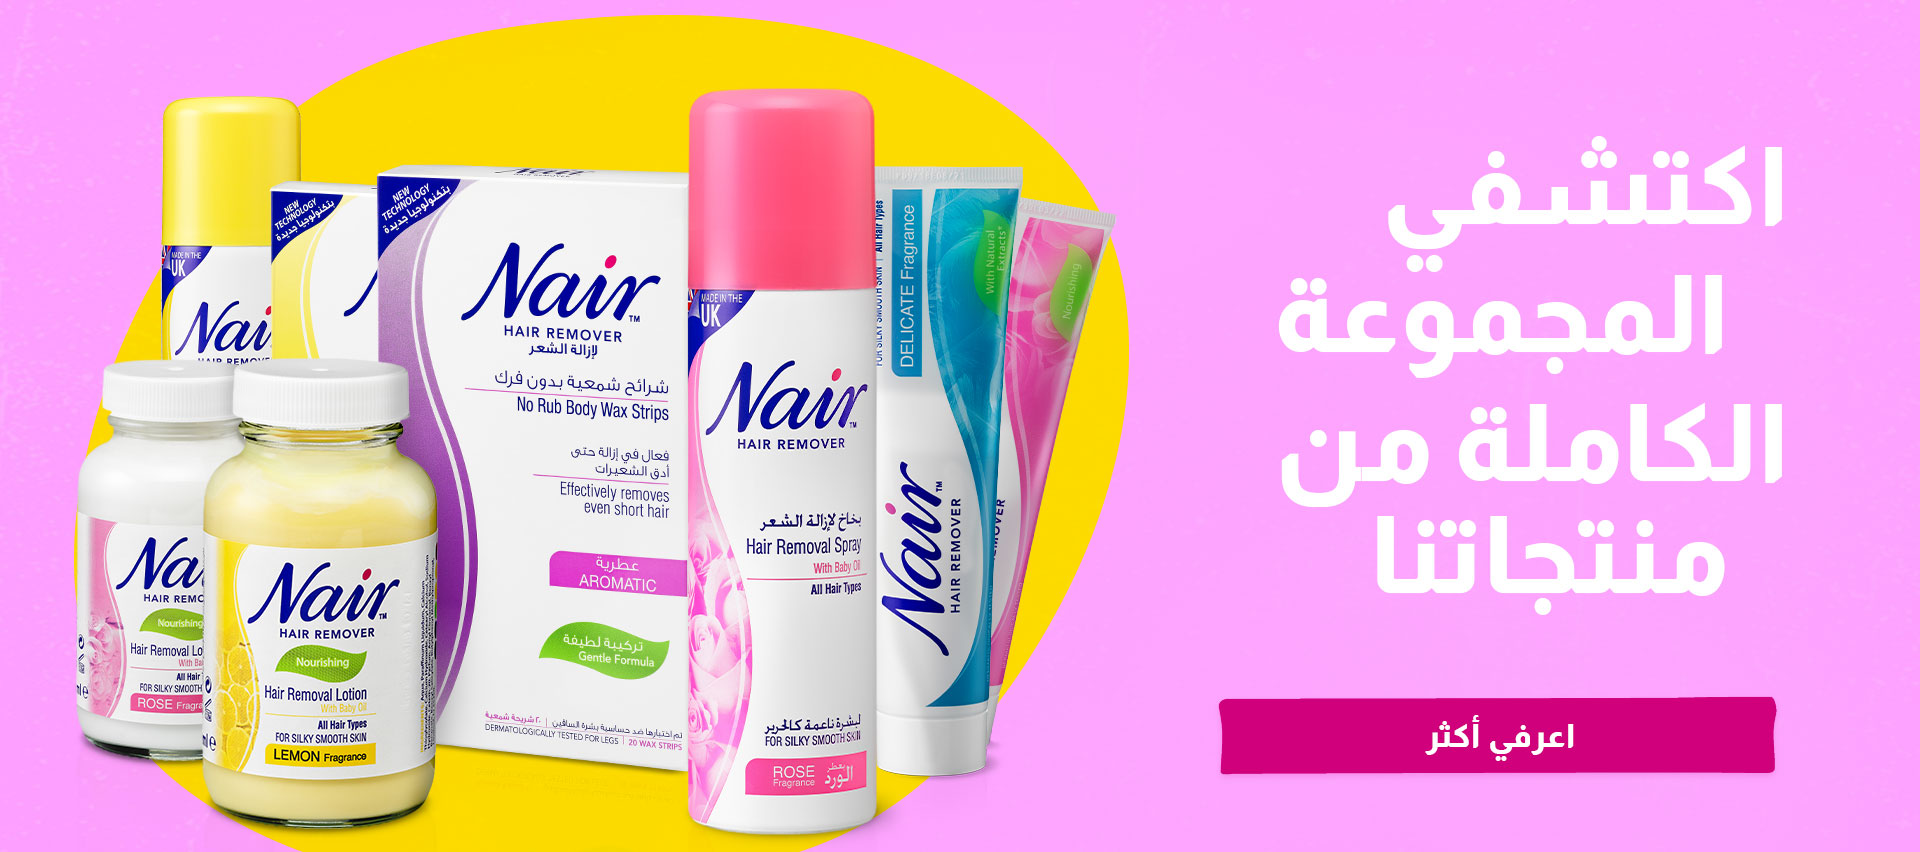 Nair Products